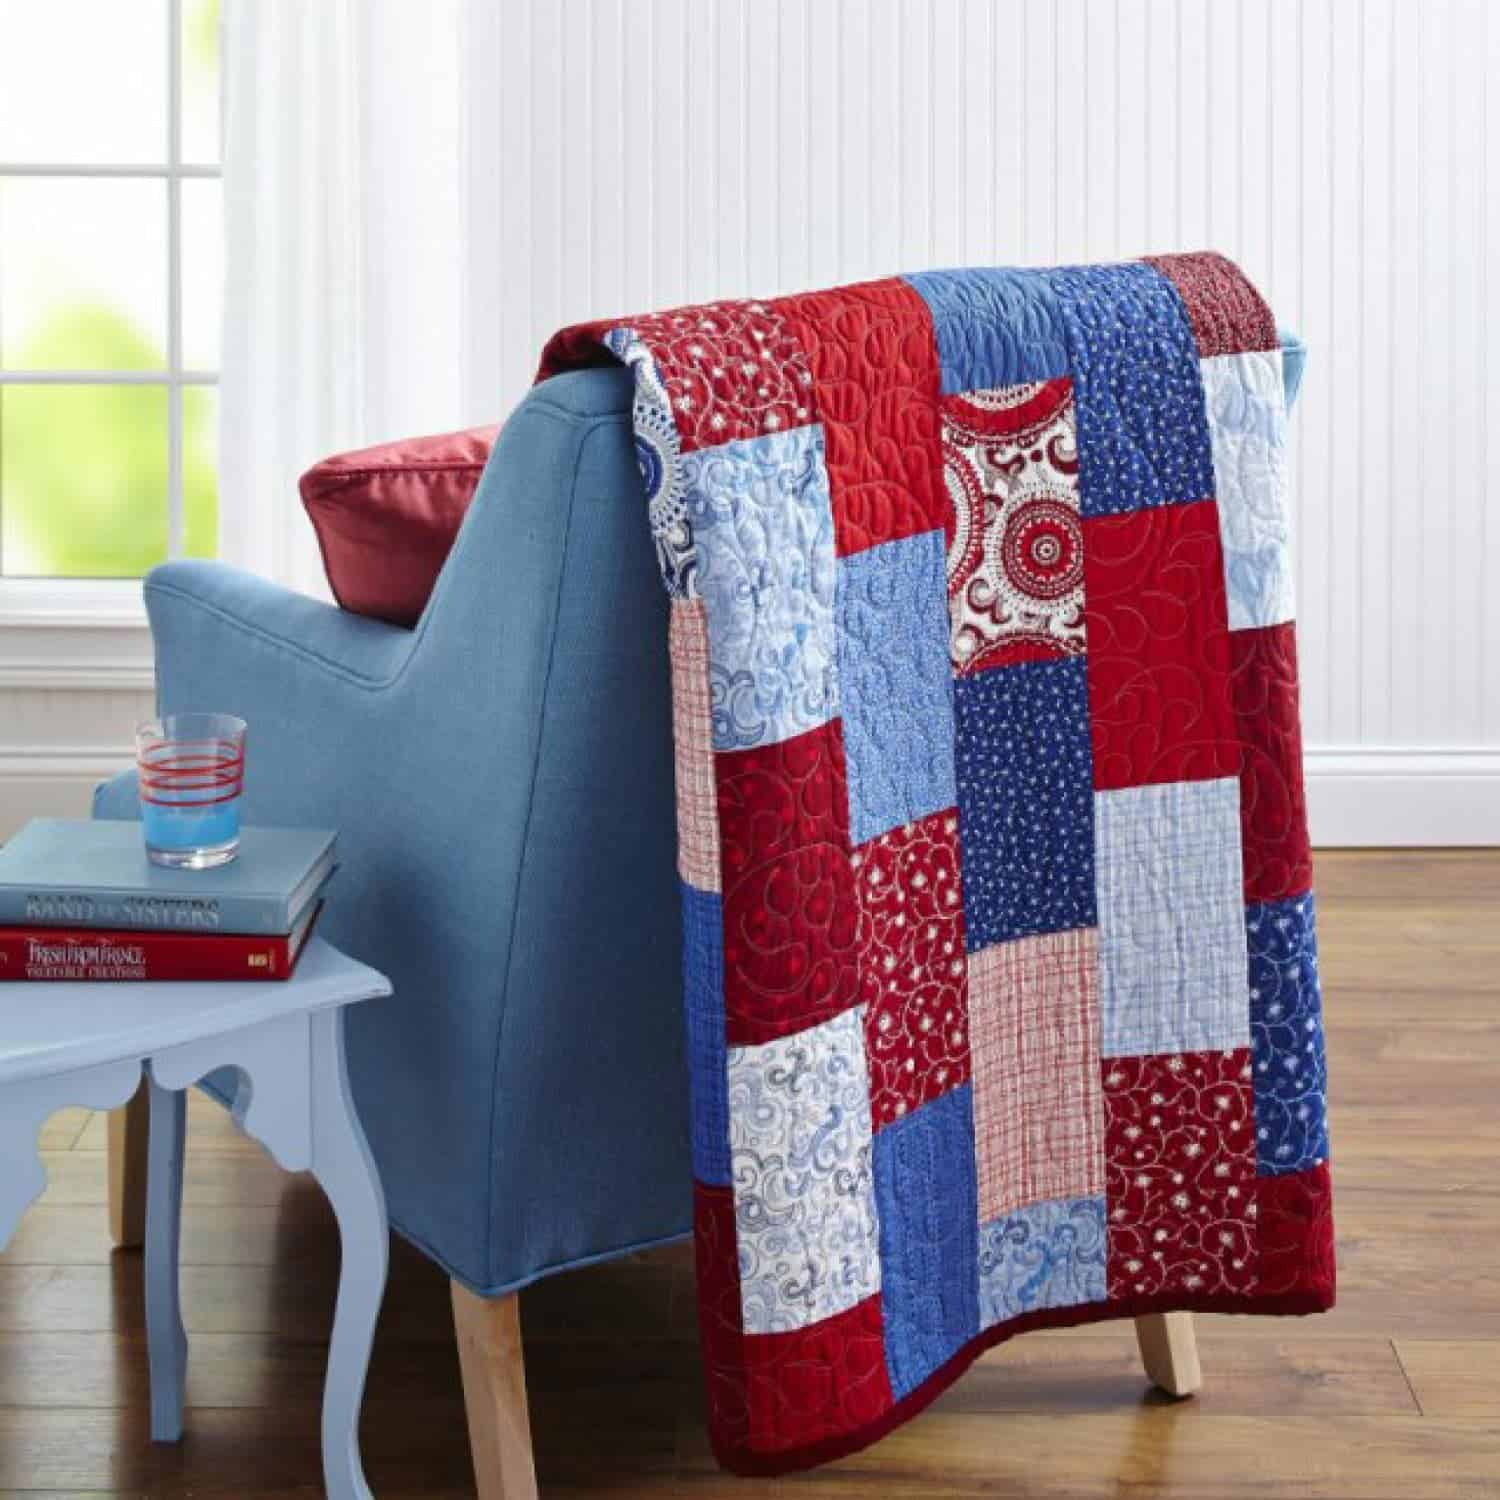 4th of july sewing project ideas